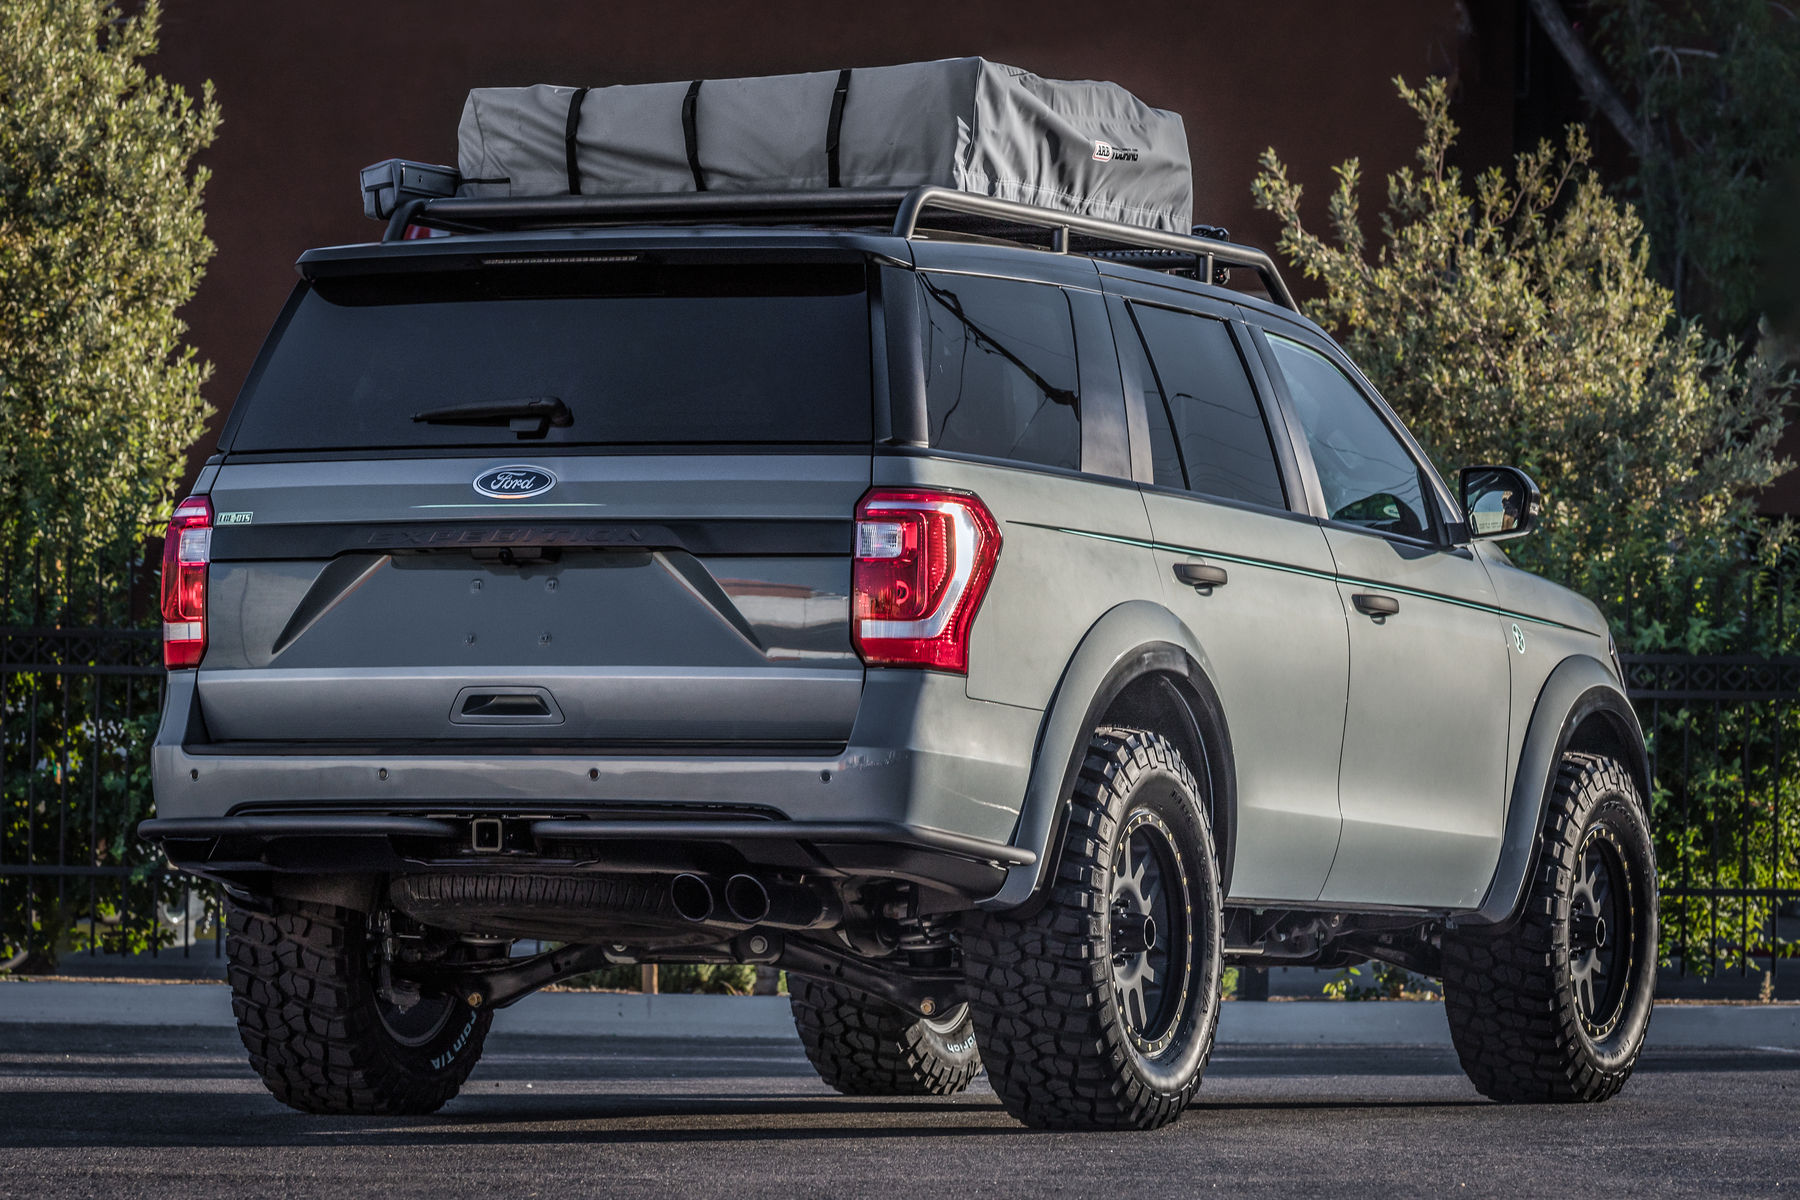 2018 Ford Expedition by LGE-CTS Motorsports - Rear Shot ...